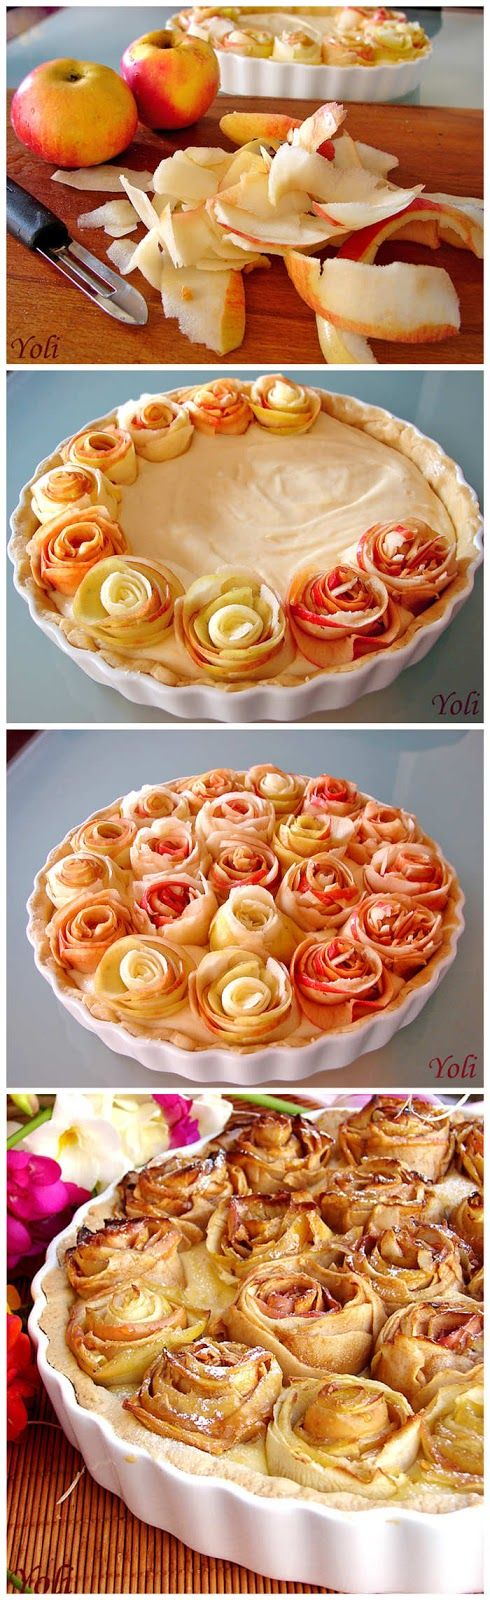 Apple pie with roses- wow, this is beautiful!